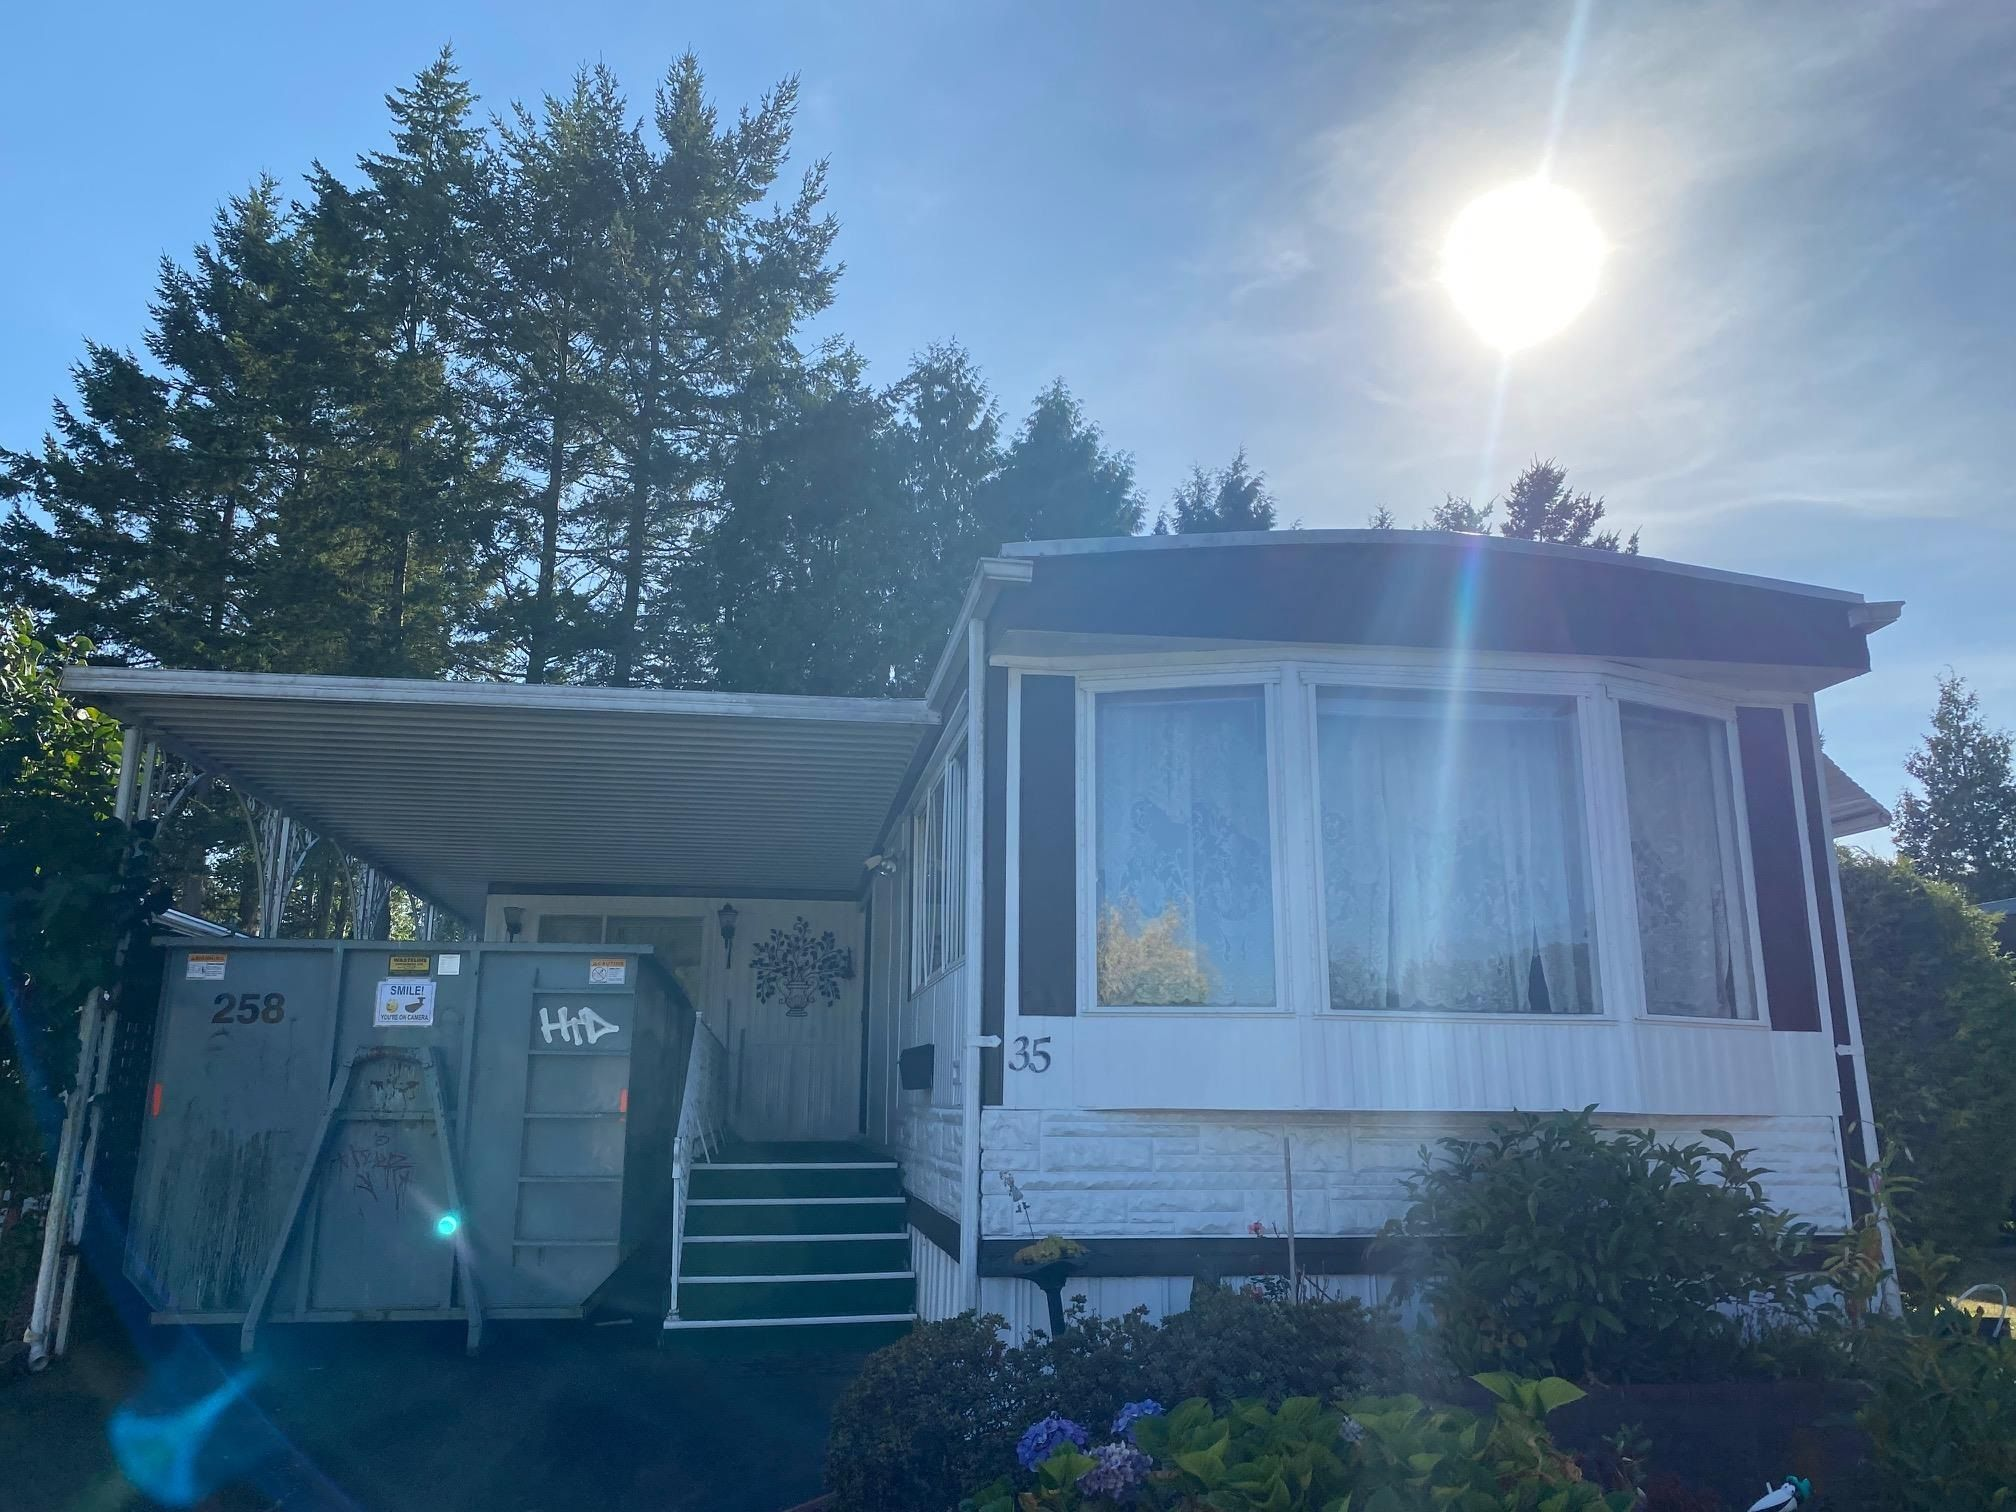 """Main Photo: 35 1840 160 Street in Surrey: King George Corridor Manufactured Home for sale in """"Breakaway Bays"""" (South Surrey White Rock)  : MLS®# R2608200"""